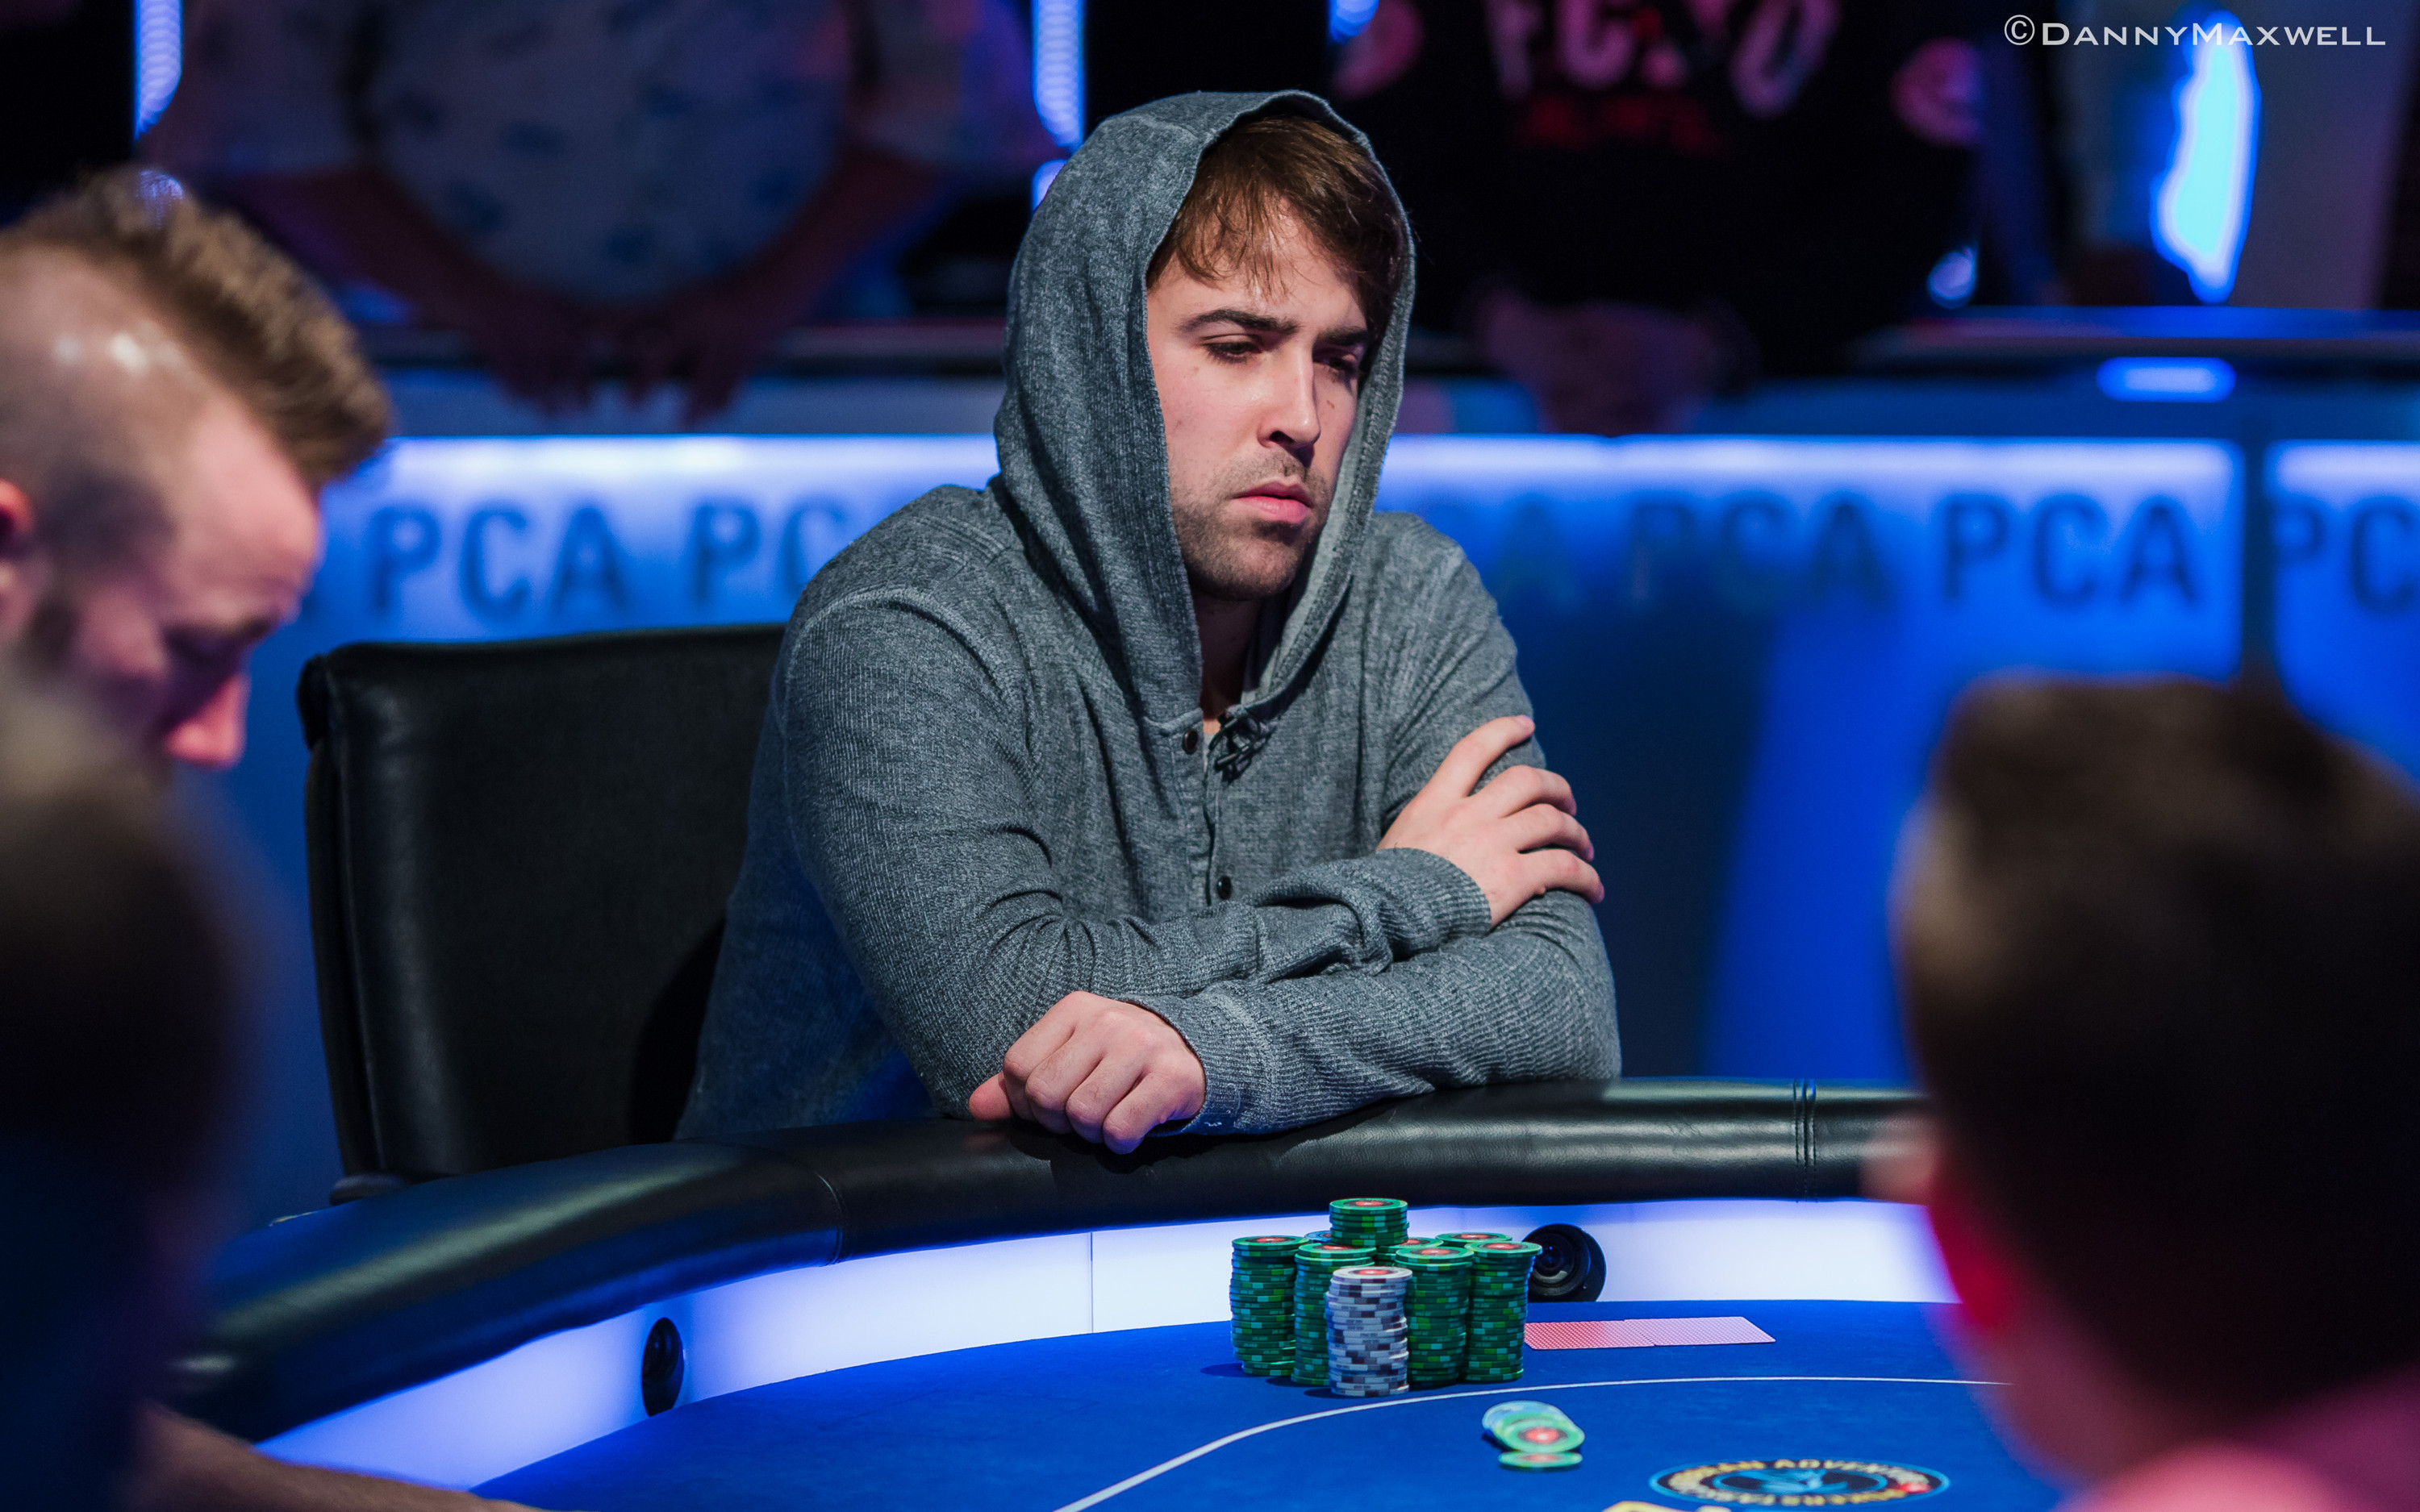 To Defend Or Not To Defend? Facing A Preflop Raise From The Big Blind